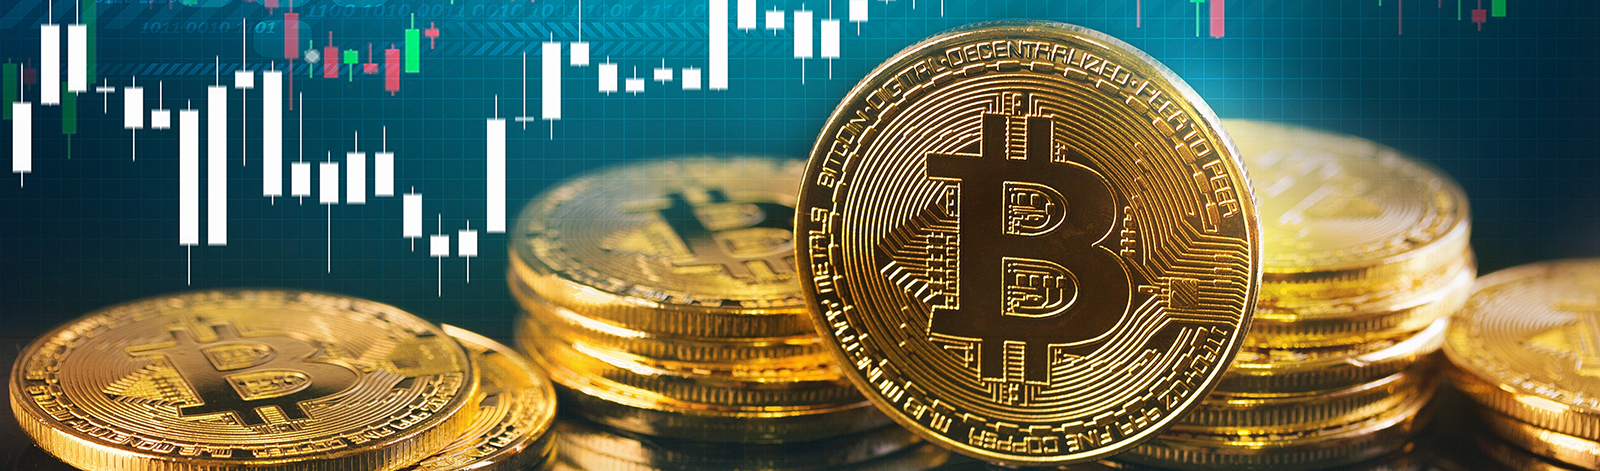 Bitcoins in front of digital background